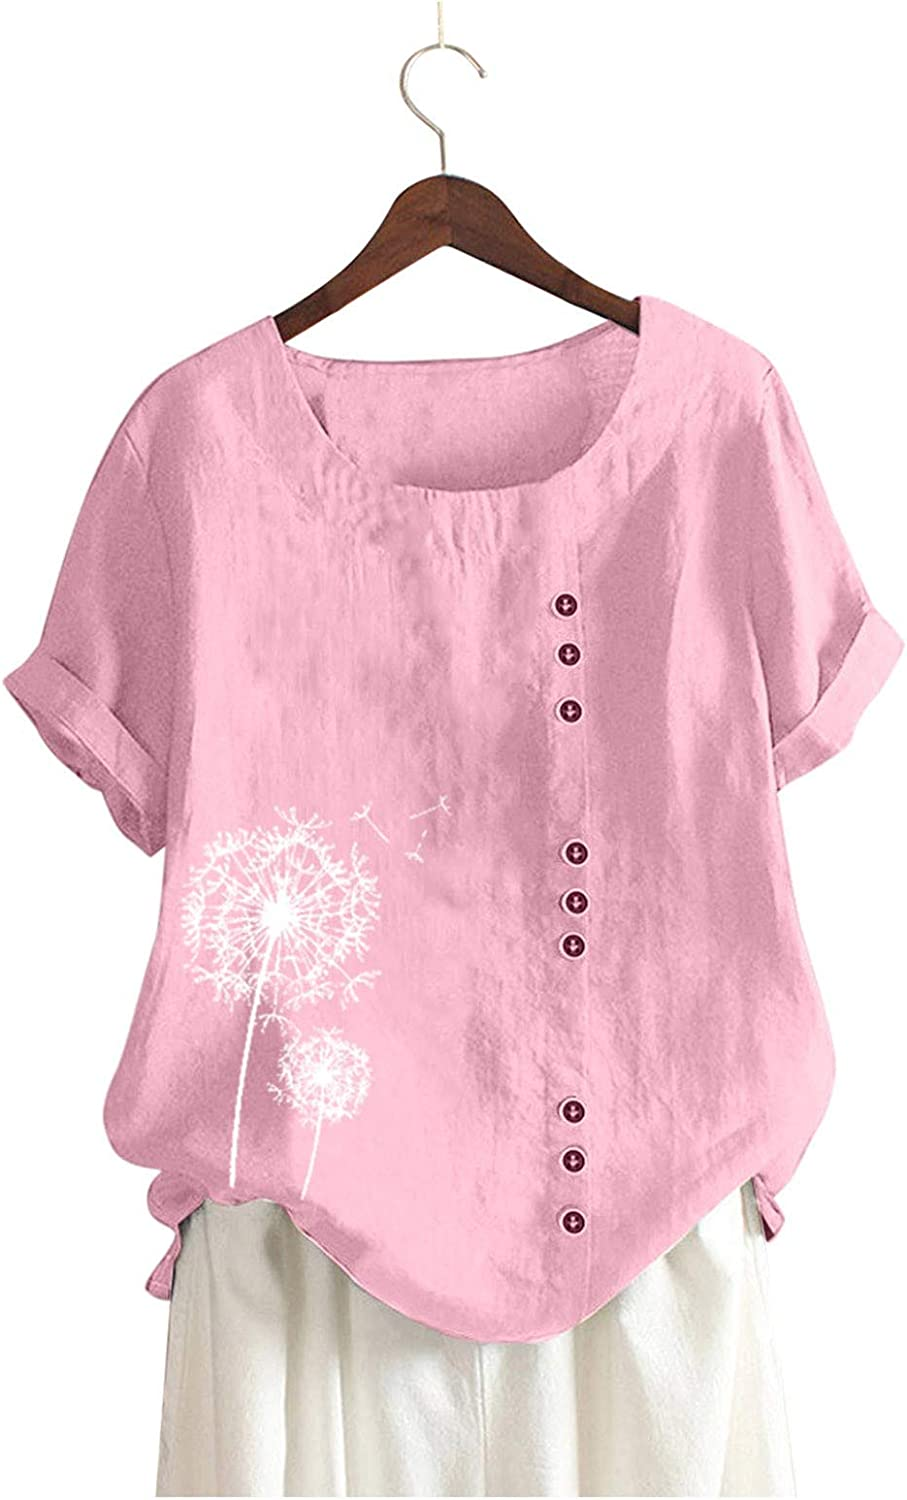 Jaqqra Summer Tops for Women, Womens Short Sleeve Tops Dandelion Button Up O-Neck T-Shirts Loose Blouse Tops Tunic Tee